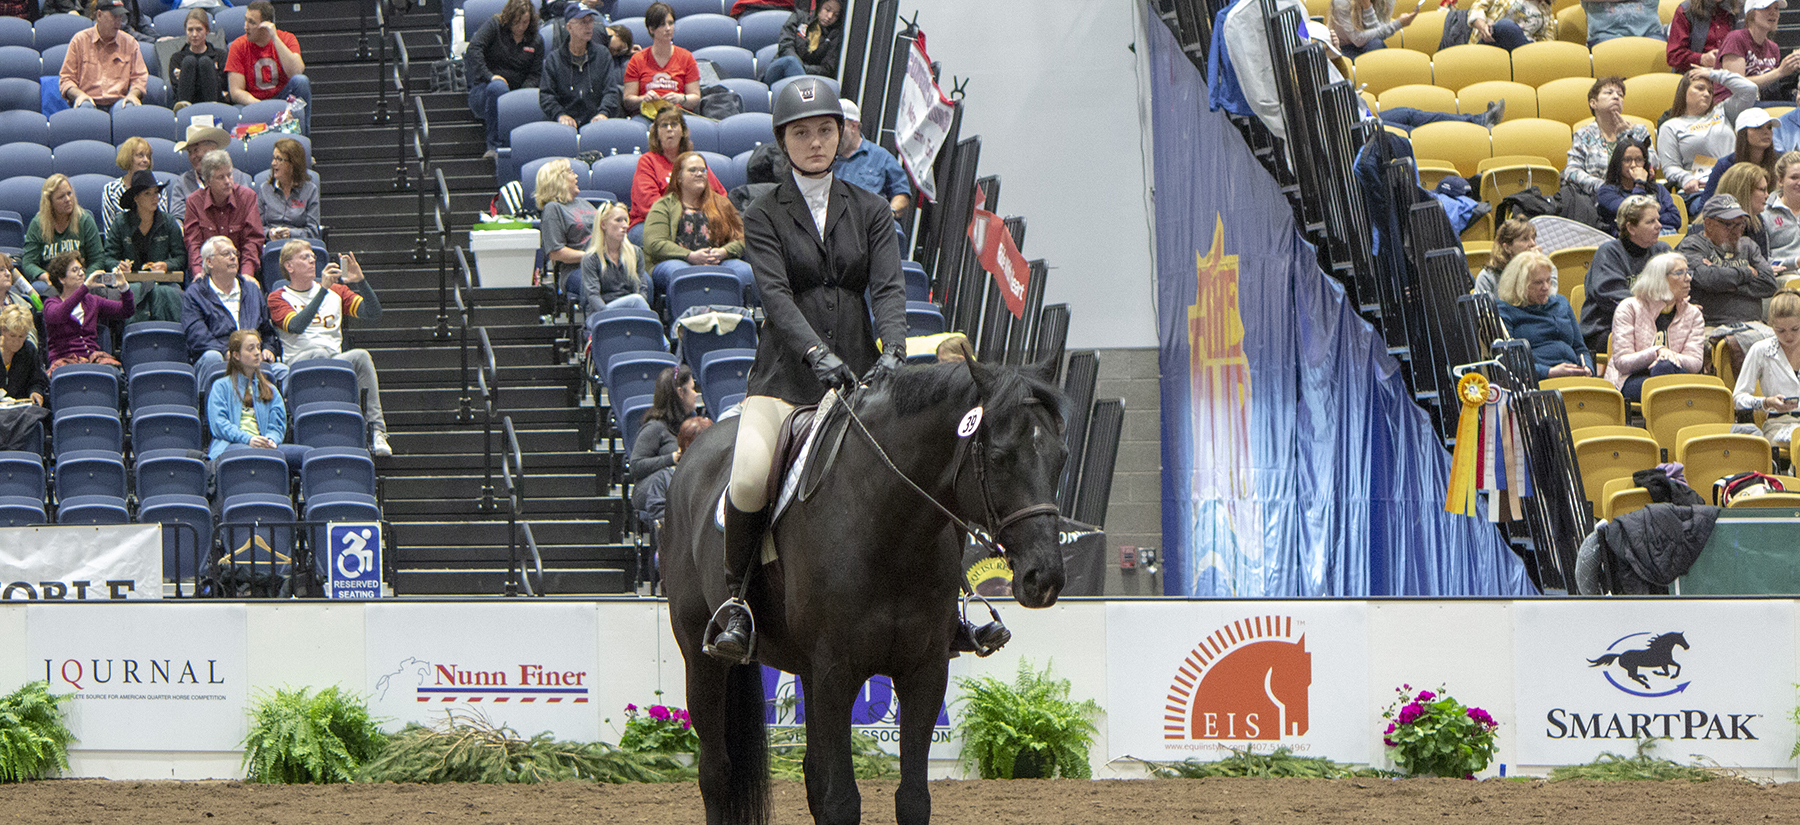 Dion Qualifies for IHSA Individual Championships While Equestrian Takes High Point Team at Hartford